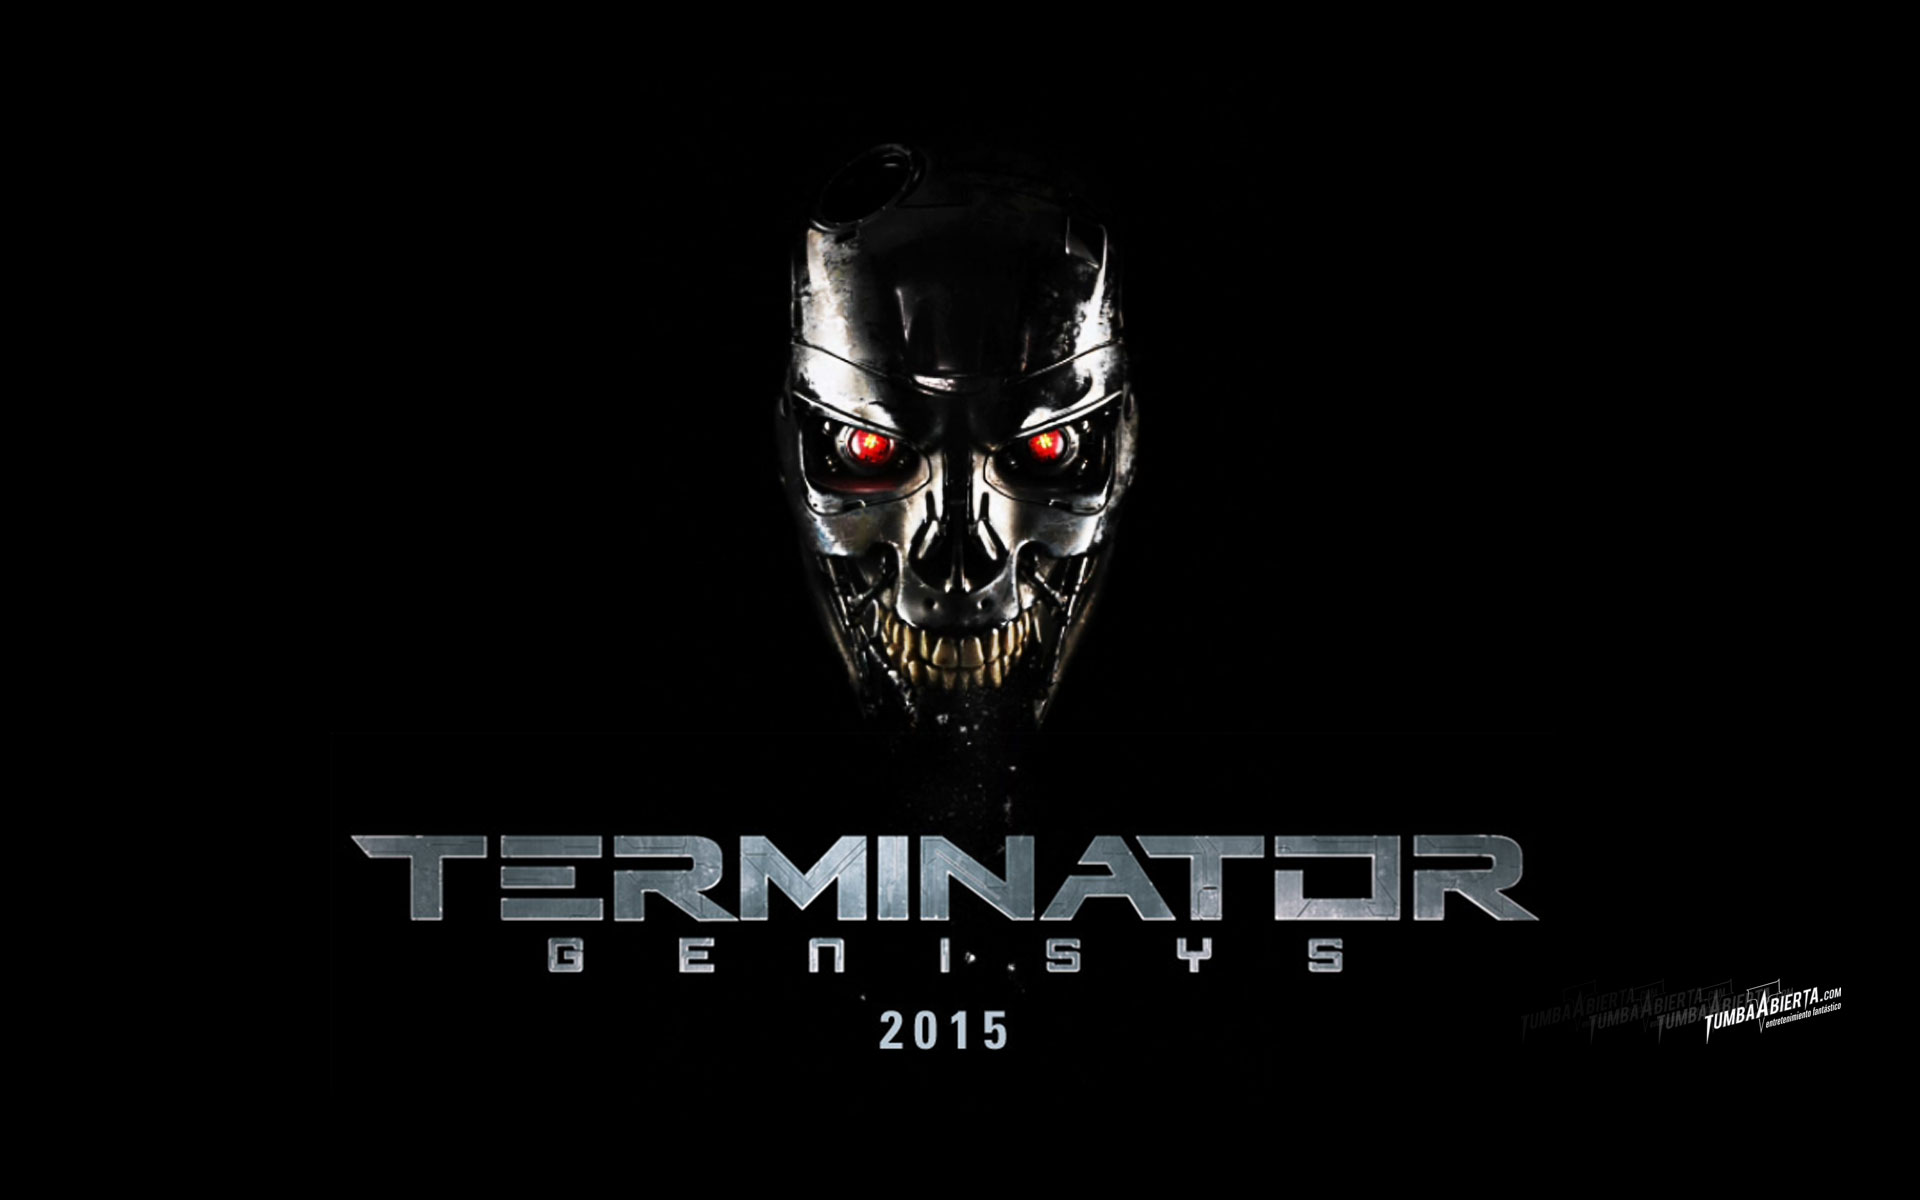 Hd wallpapers of terminator salvation